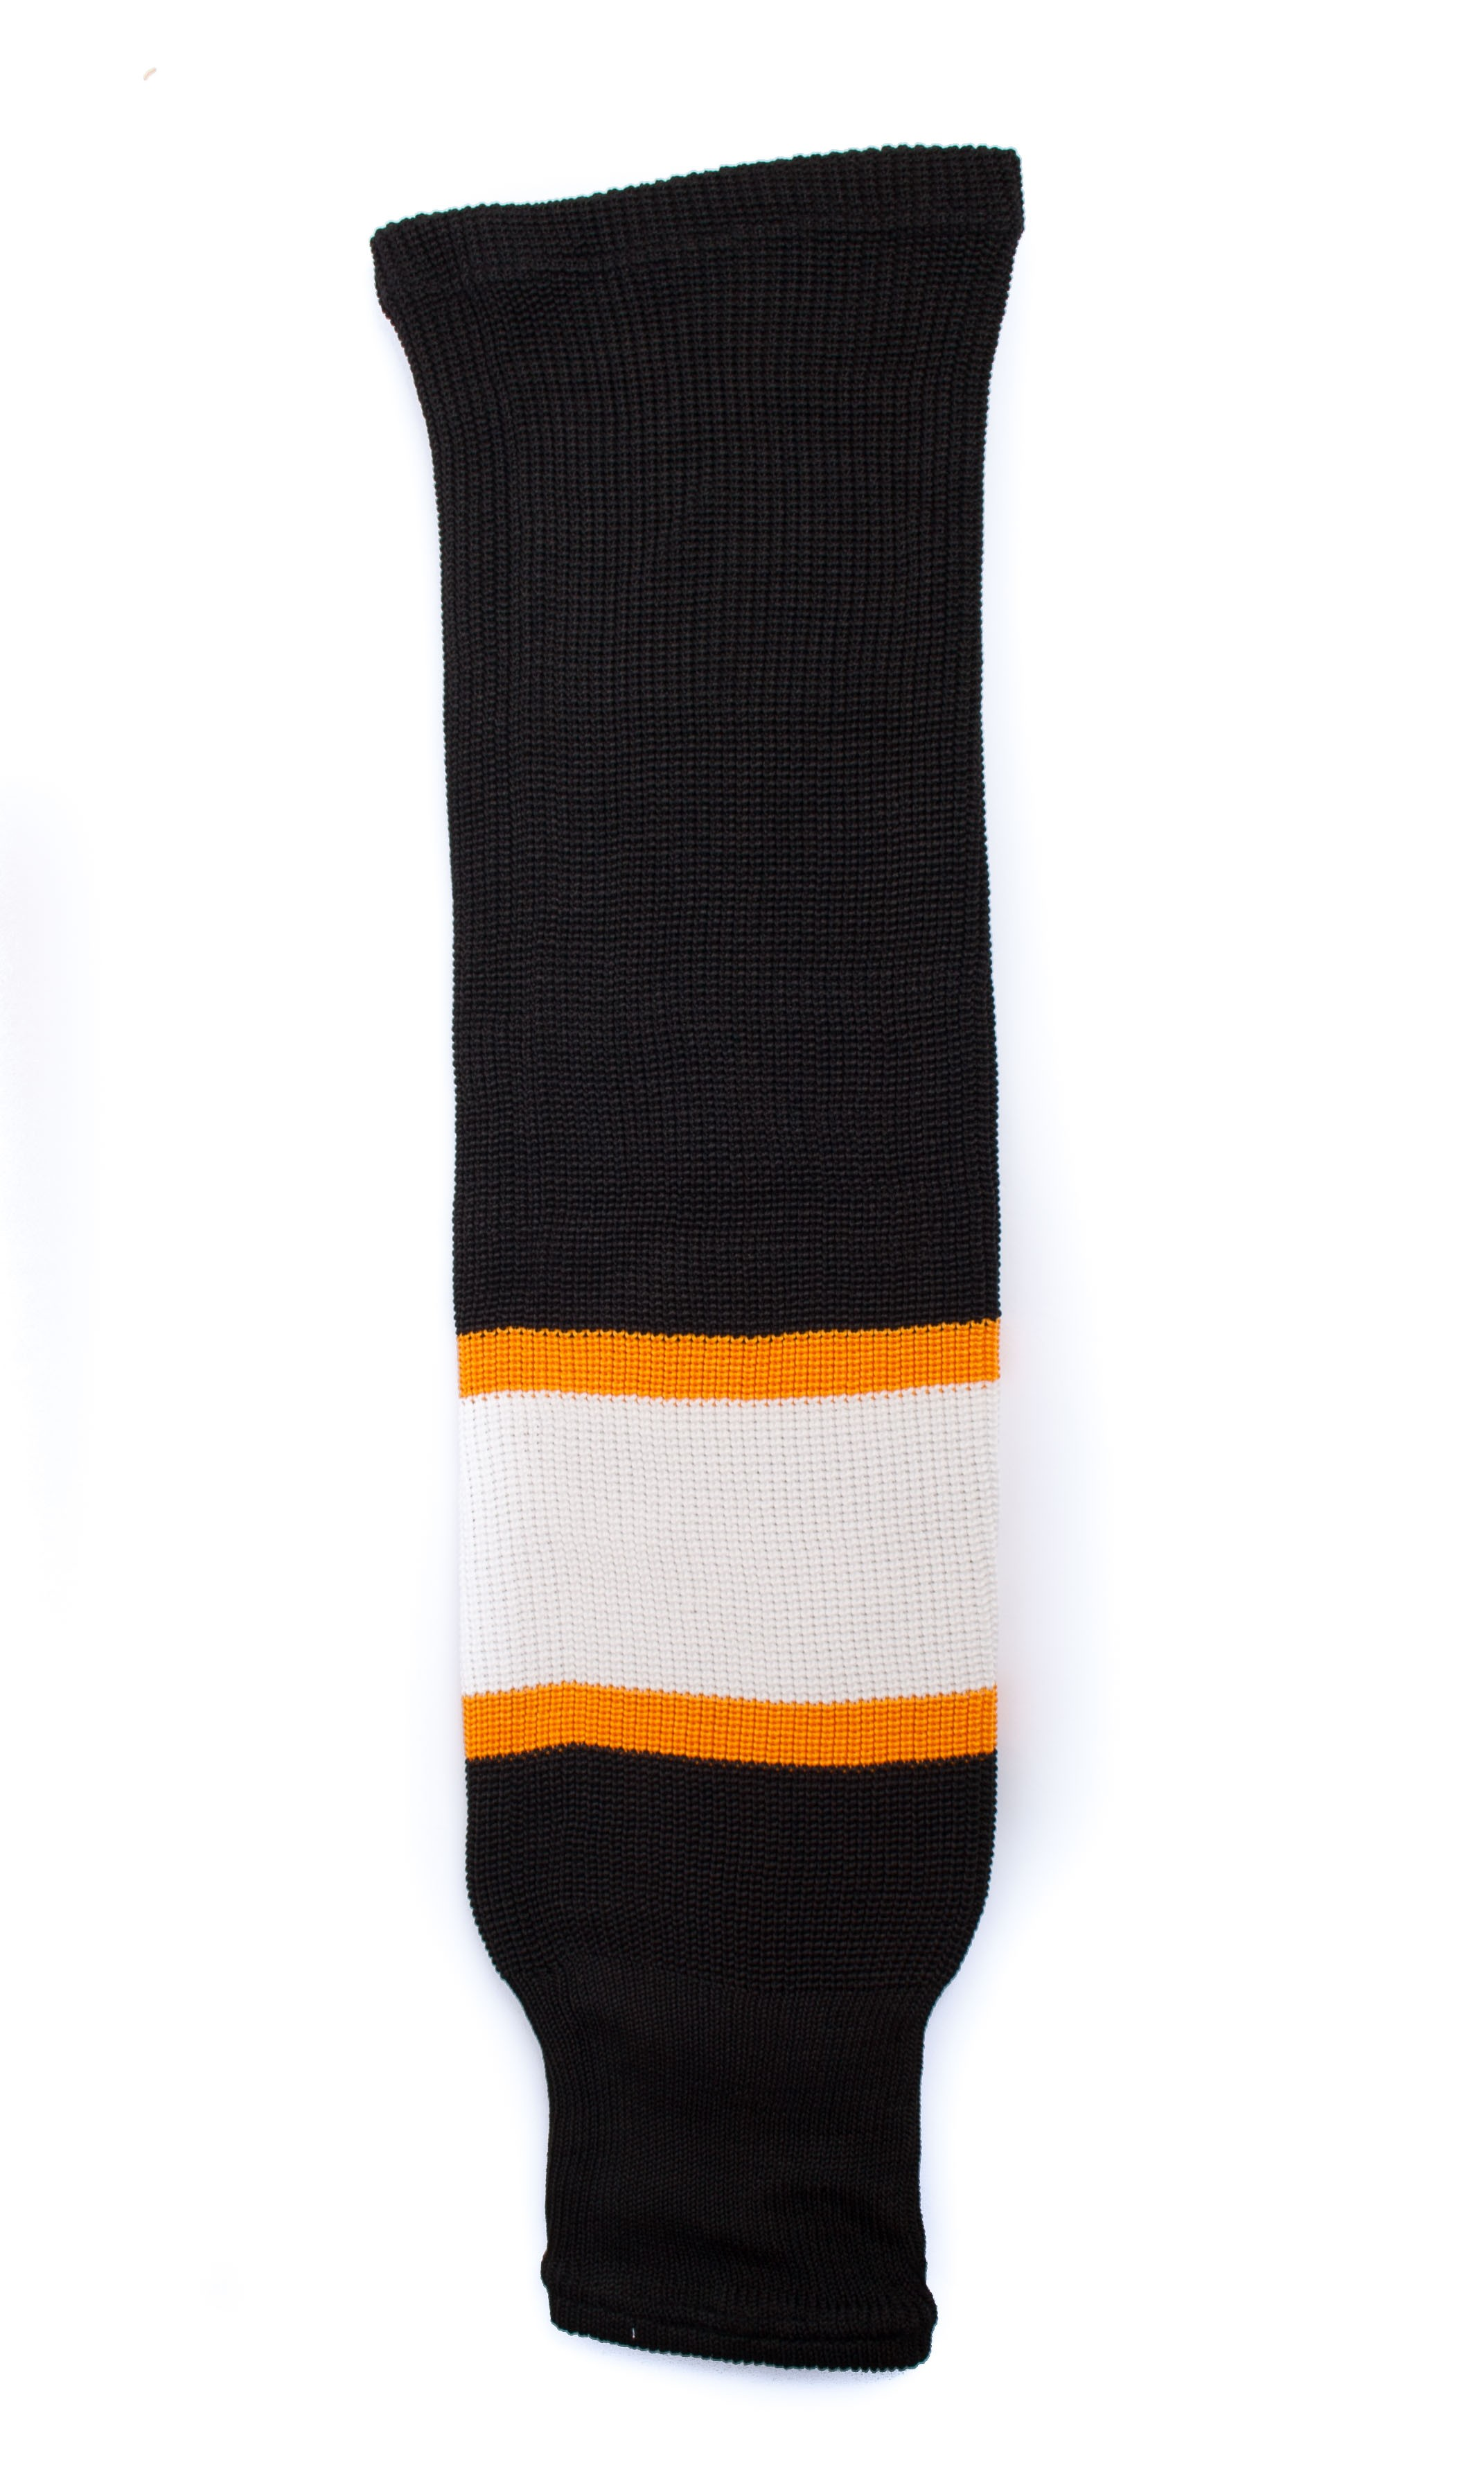 Hokejam.lv Knit Adult Hockey Socks#008